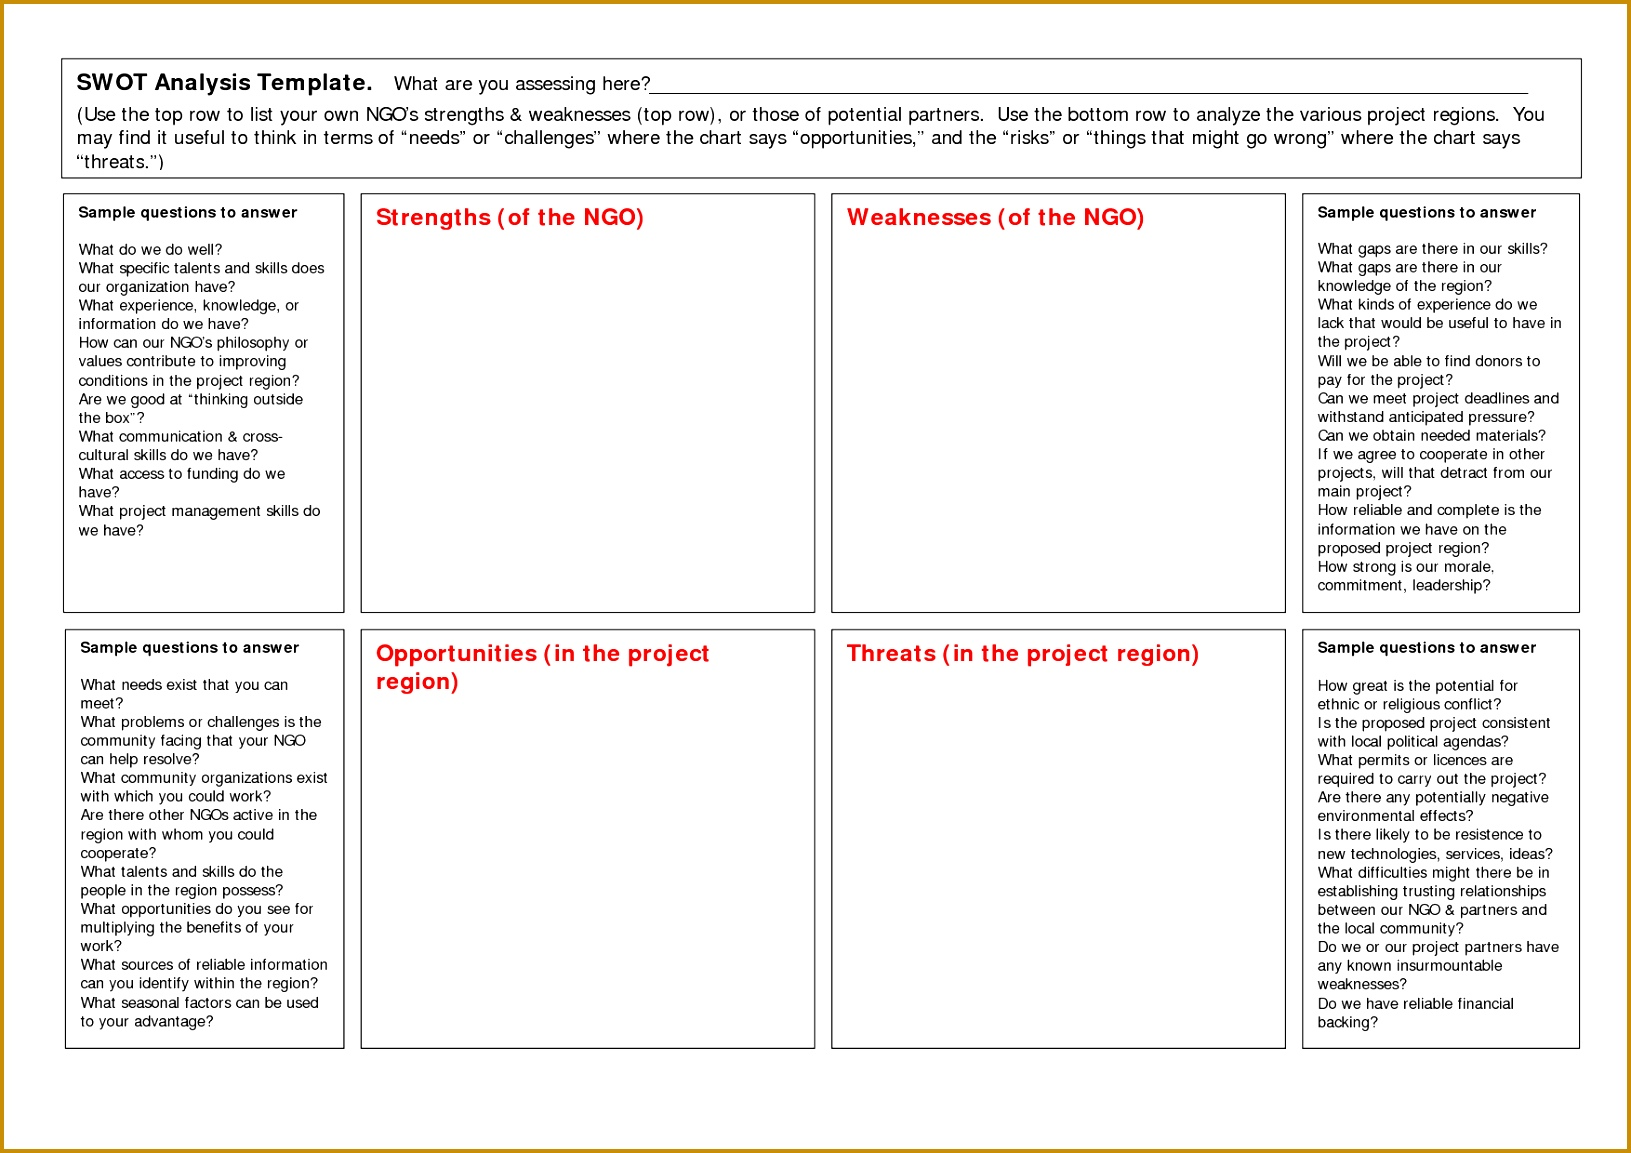 Blank Swot Analysis Template 11531631  Blank Swot Analysis Template